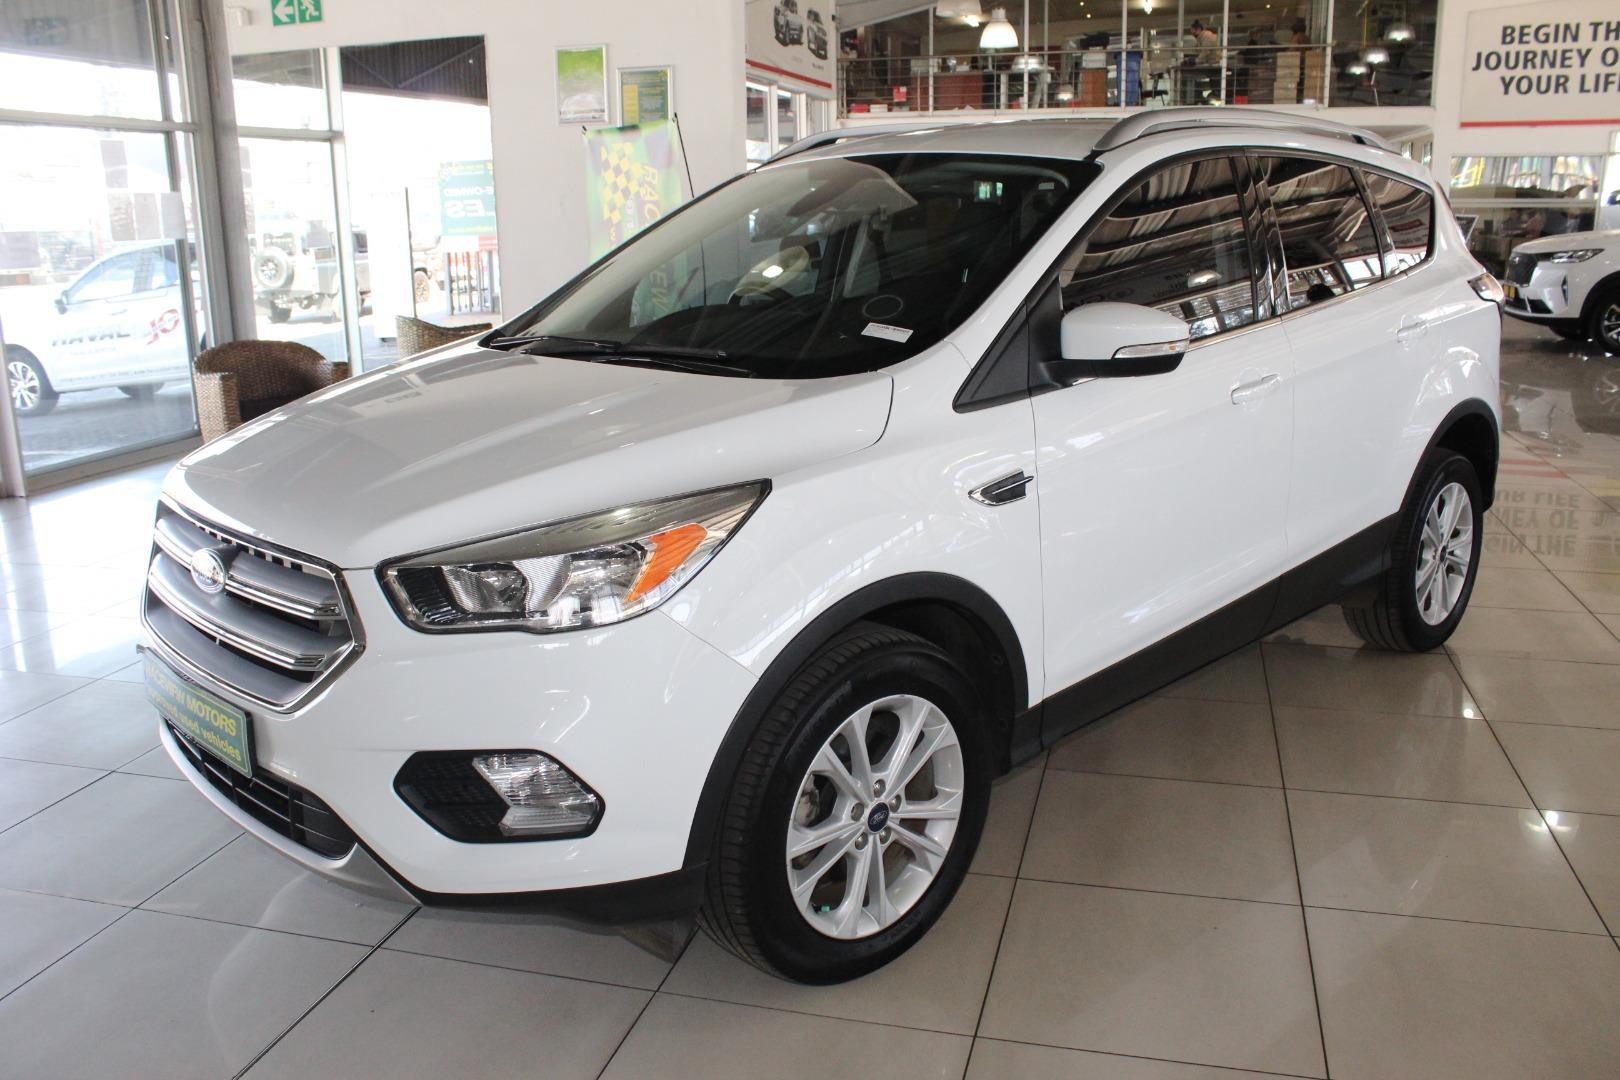 2017 Ford Kuga 1.5T Trend Auto- Picture 8